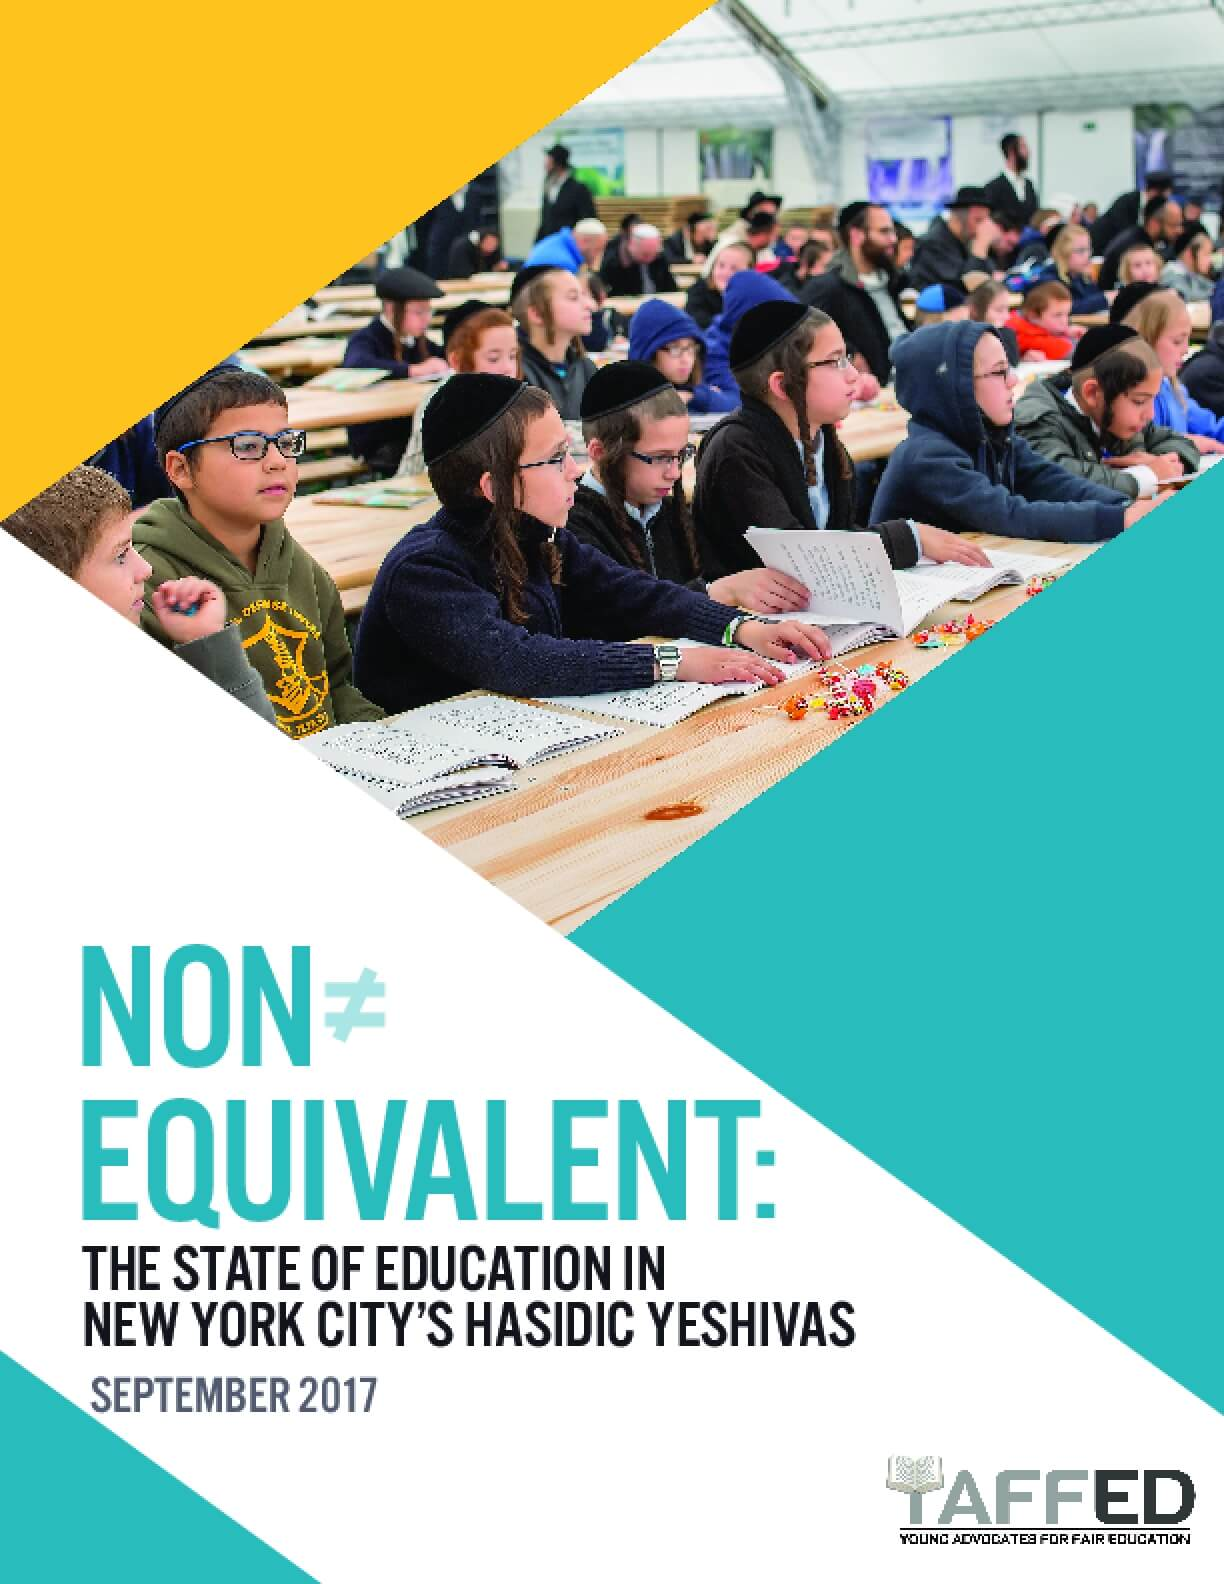 Non Equivalent: The State of Education in New York City's Hasidic Yeshivas